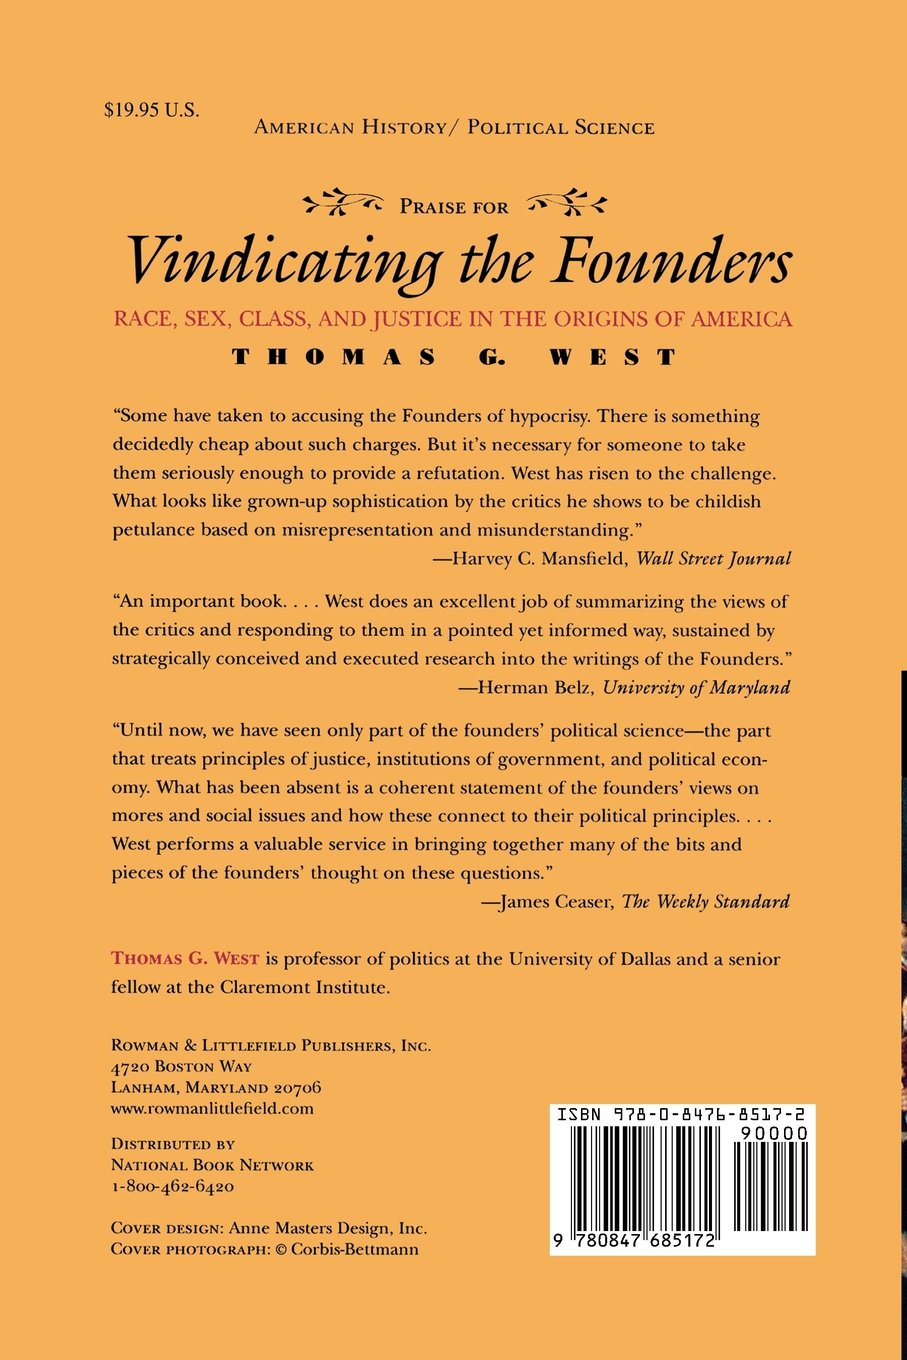 essay on founding fathers Essay title: the founding fathers the united states' founding fathers had a difficult task in creating a new type of government that would protect peoples rights and states all while giving the states enough powers for the federal government.